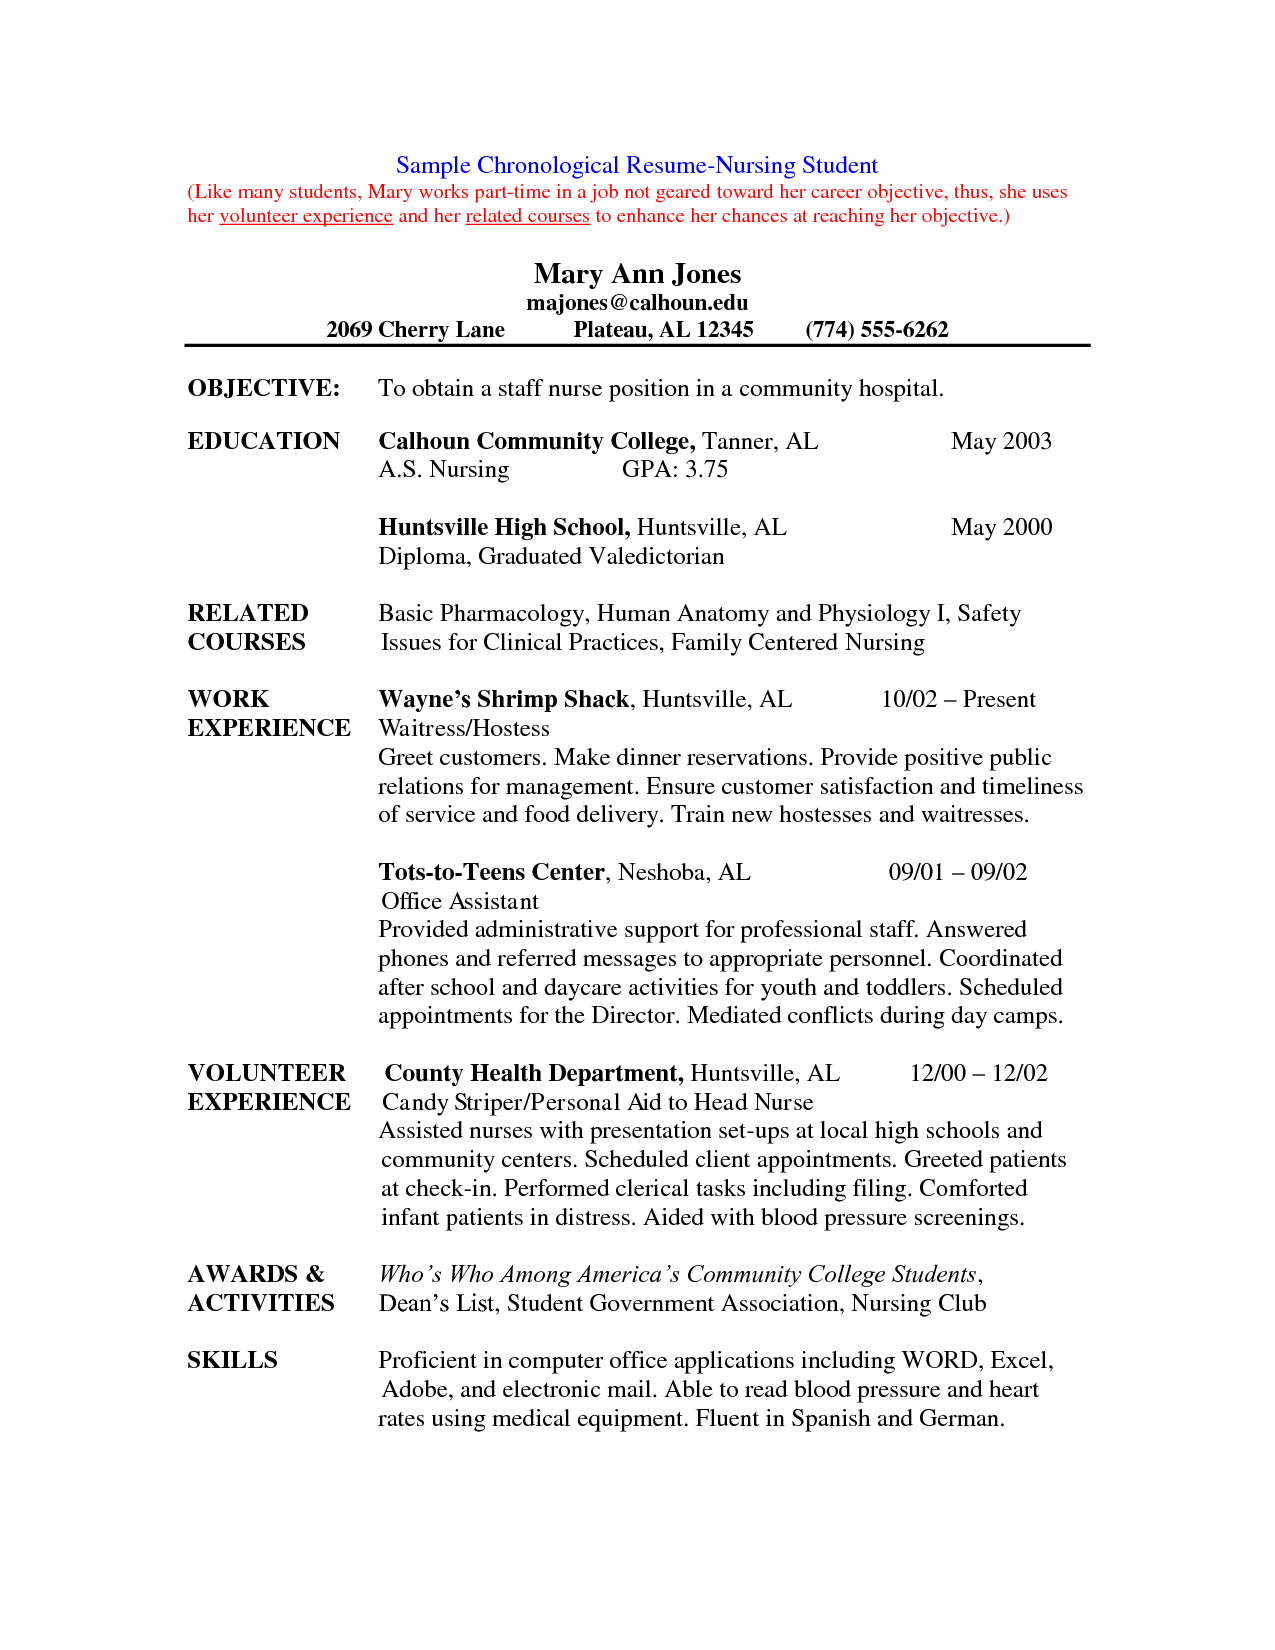 Cover Letters For Nursing Job Application Pdf Nursing Pinterest